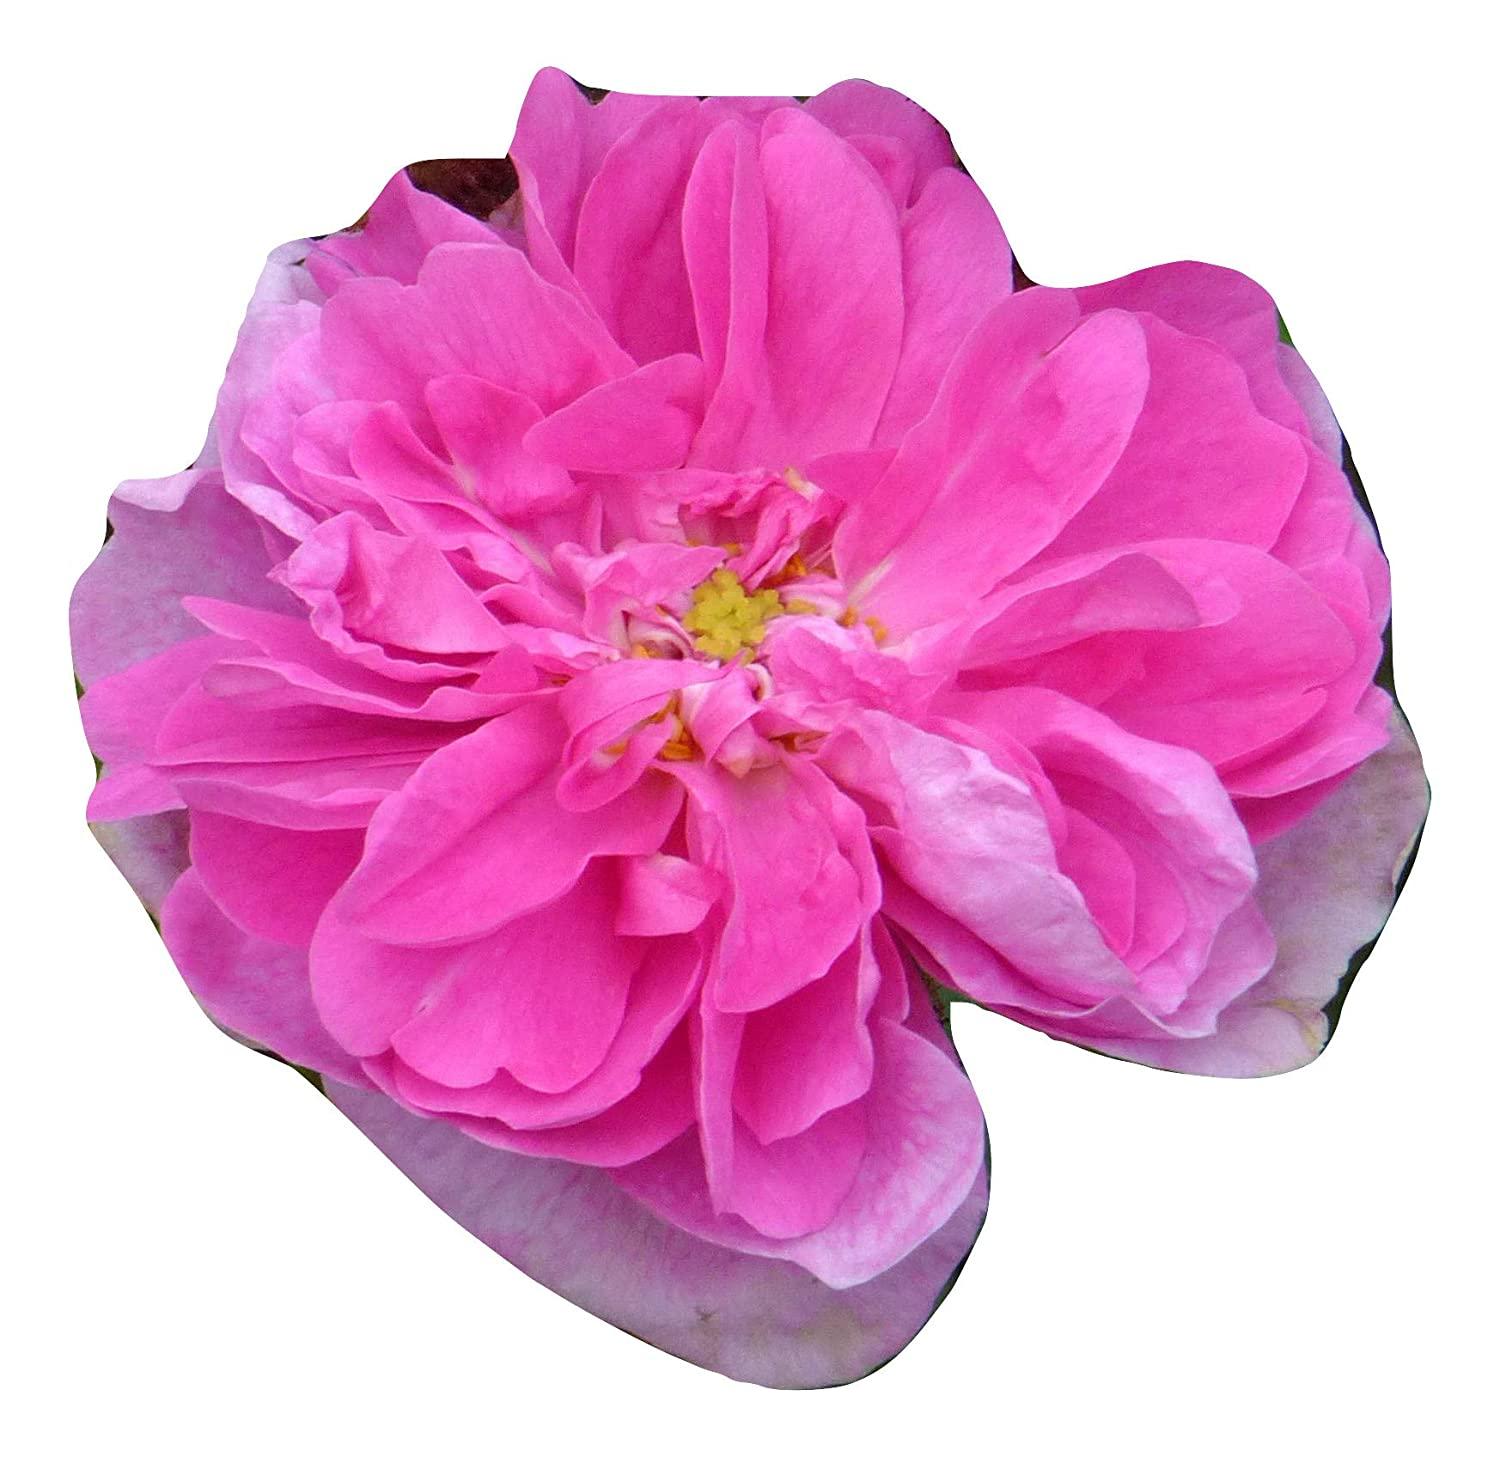 Superb Personalised Plant /& Flower Gifts For All Occasions ROSE ZOE